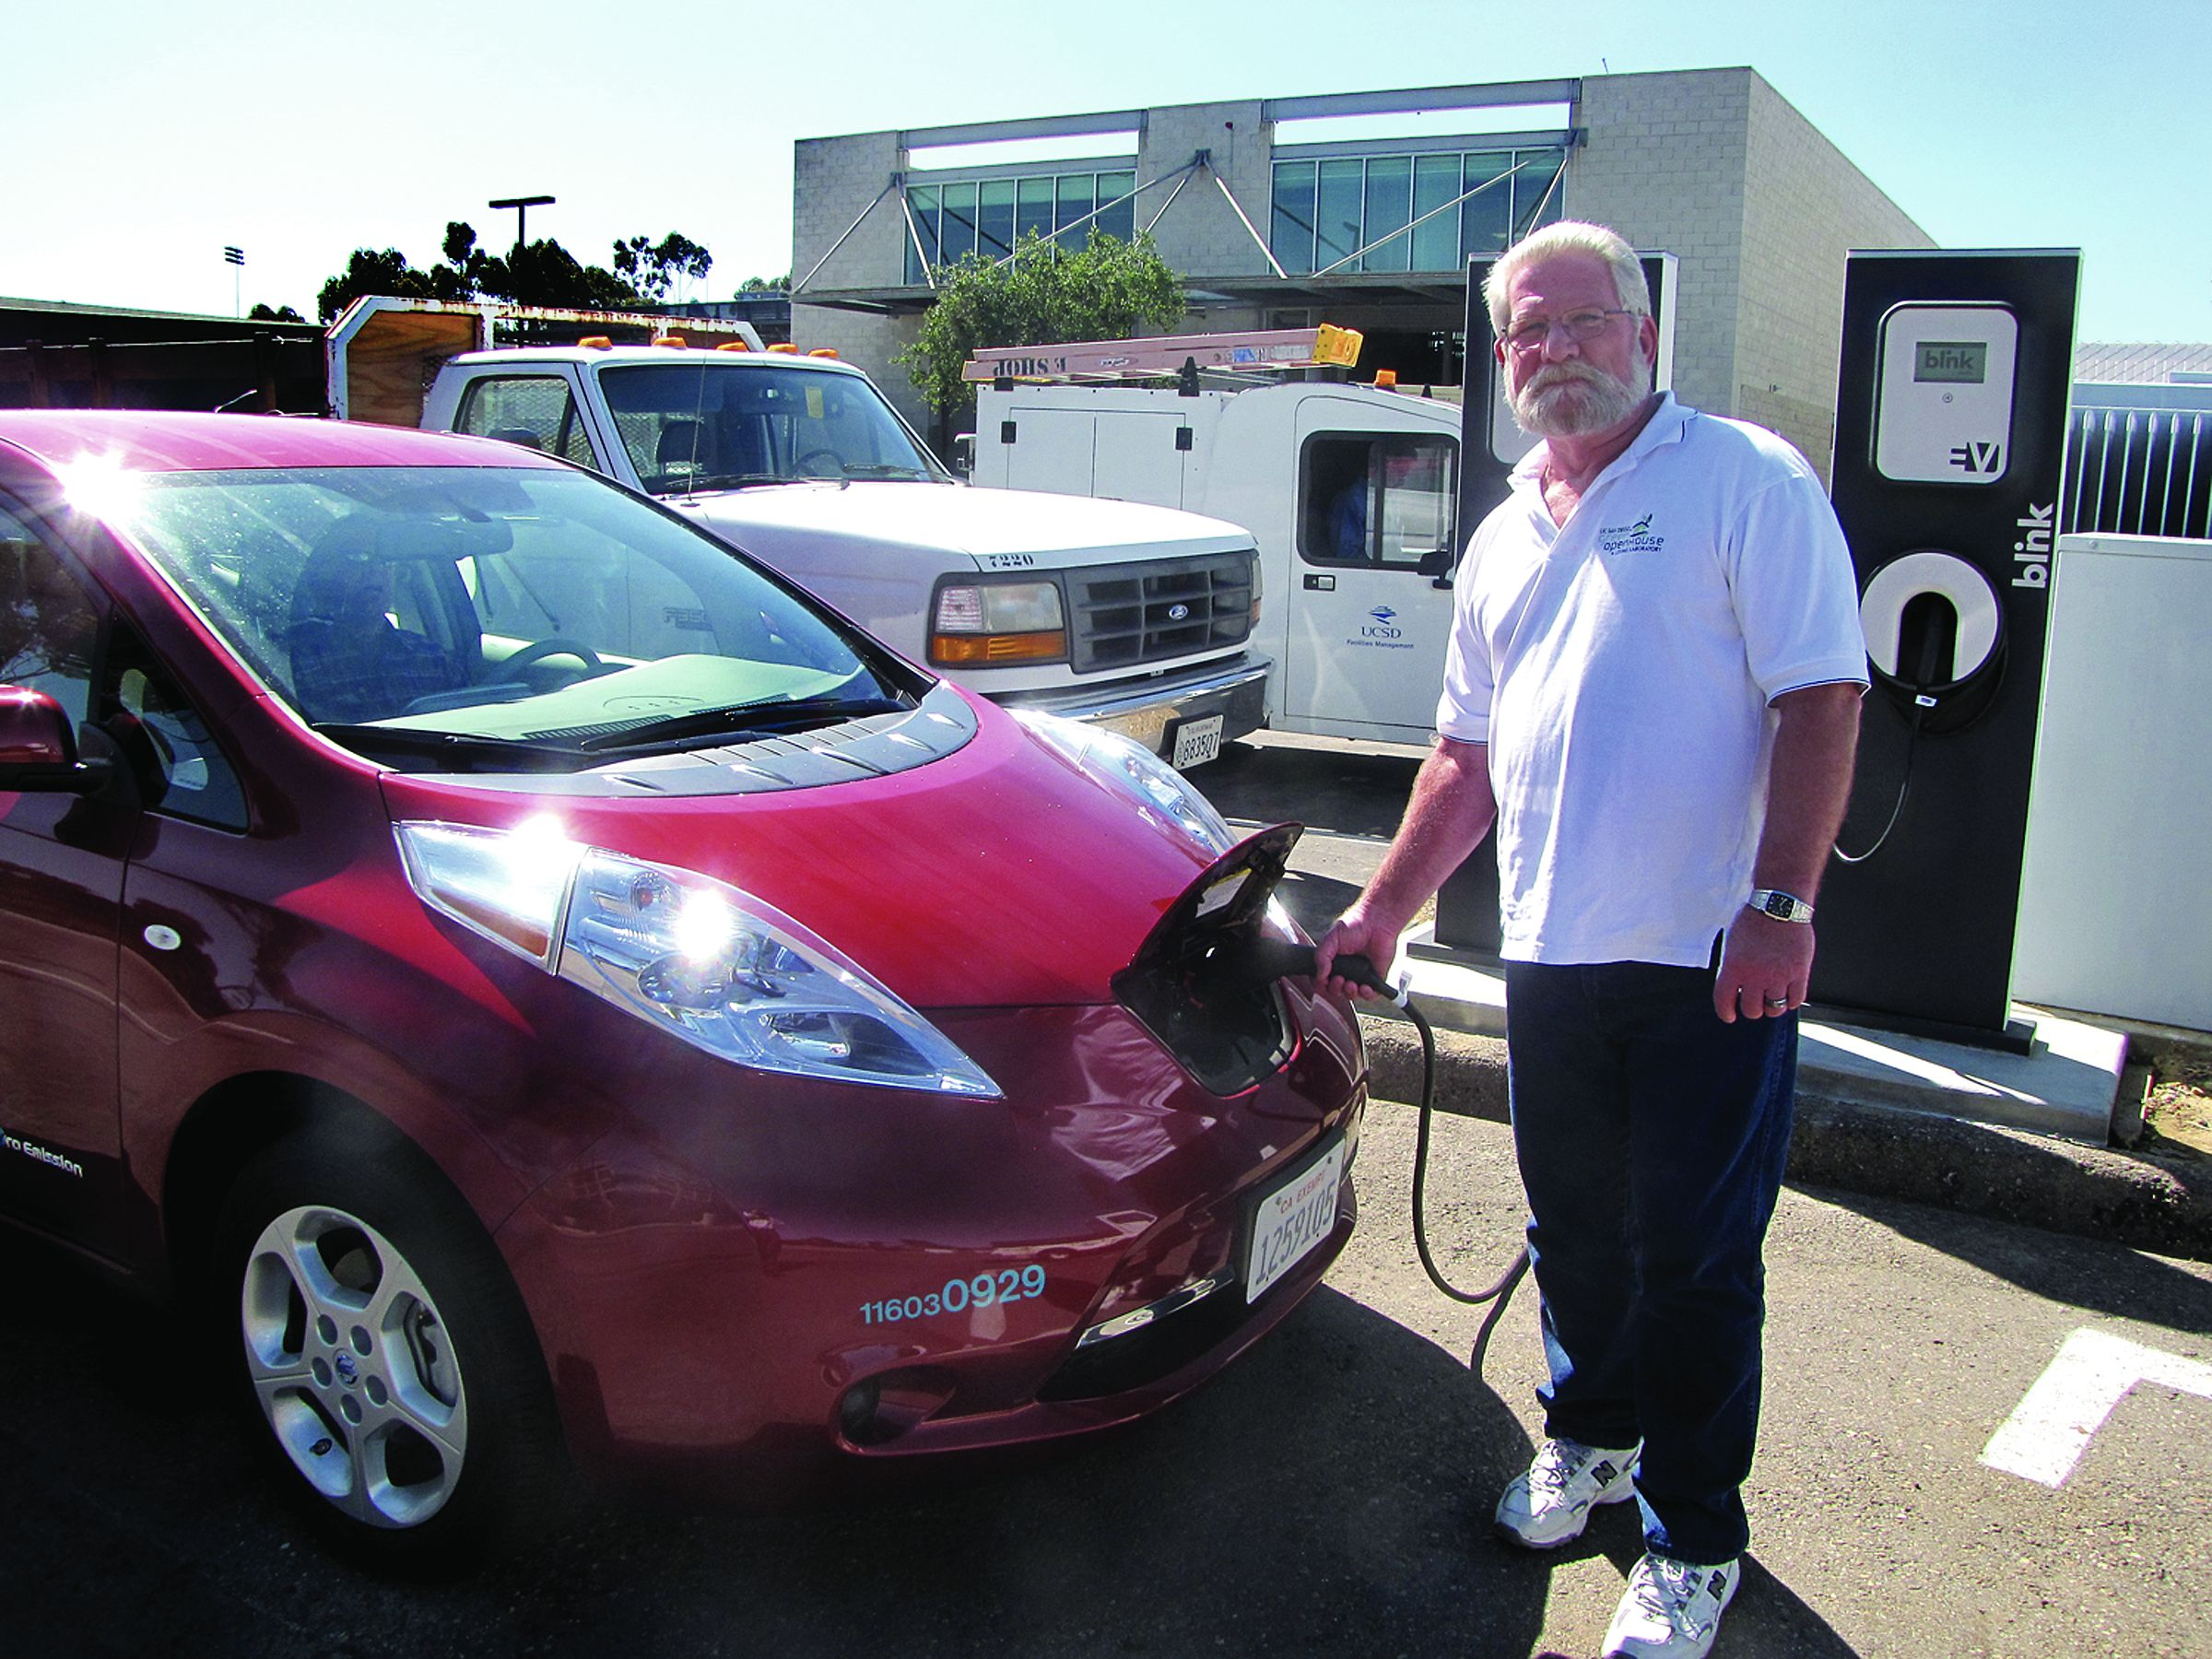 EVs Meet the Real World